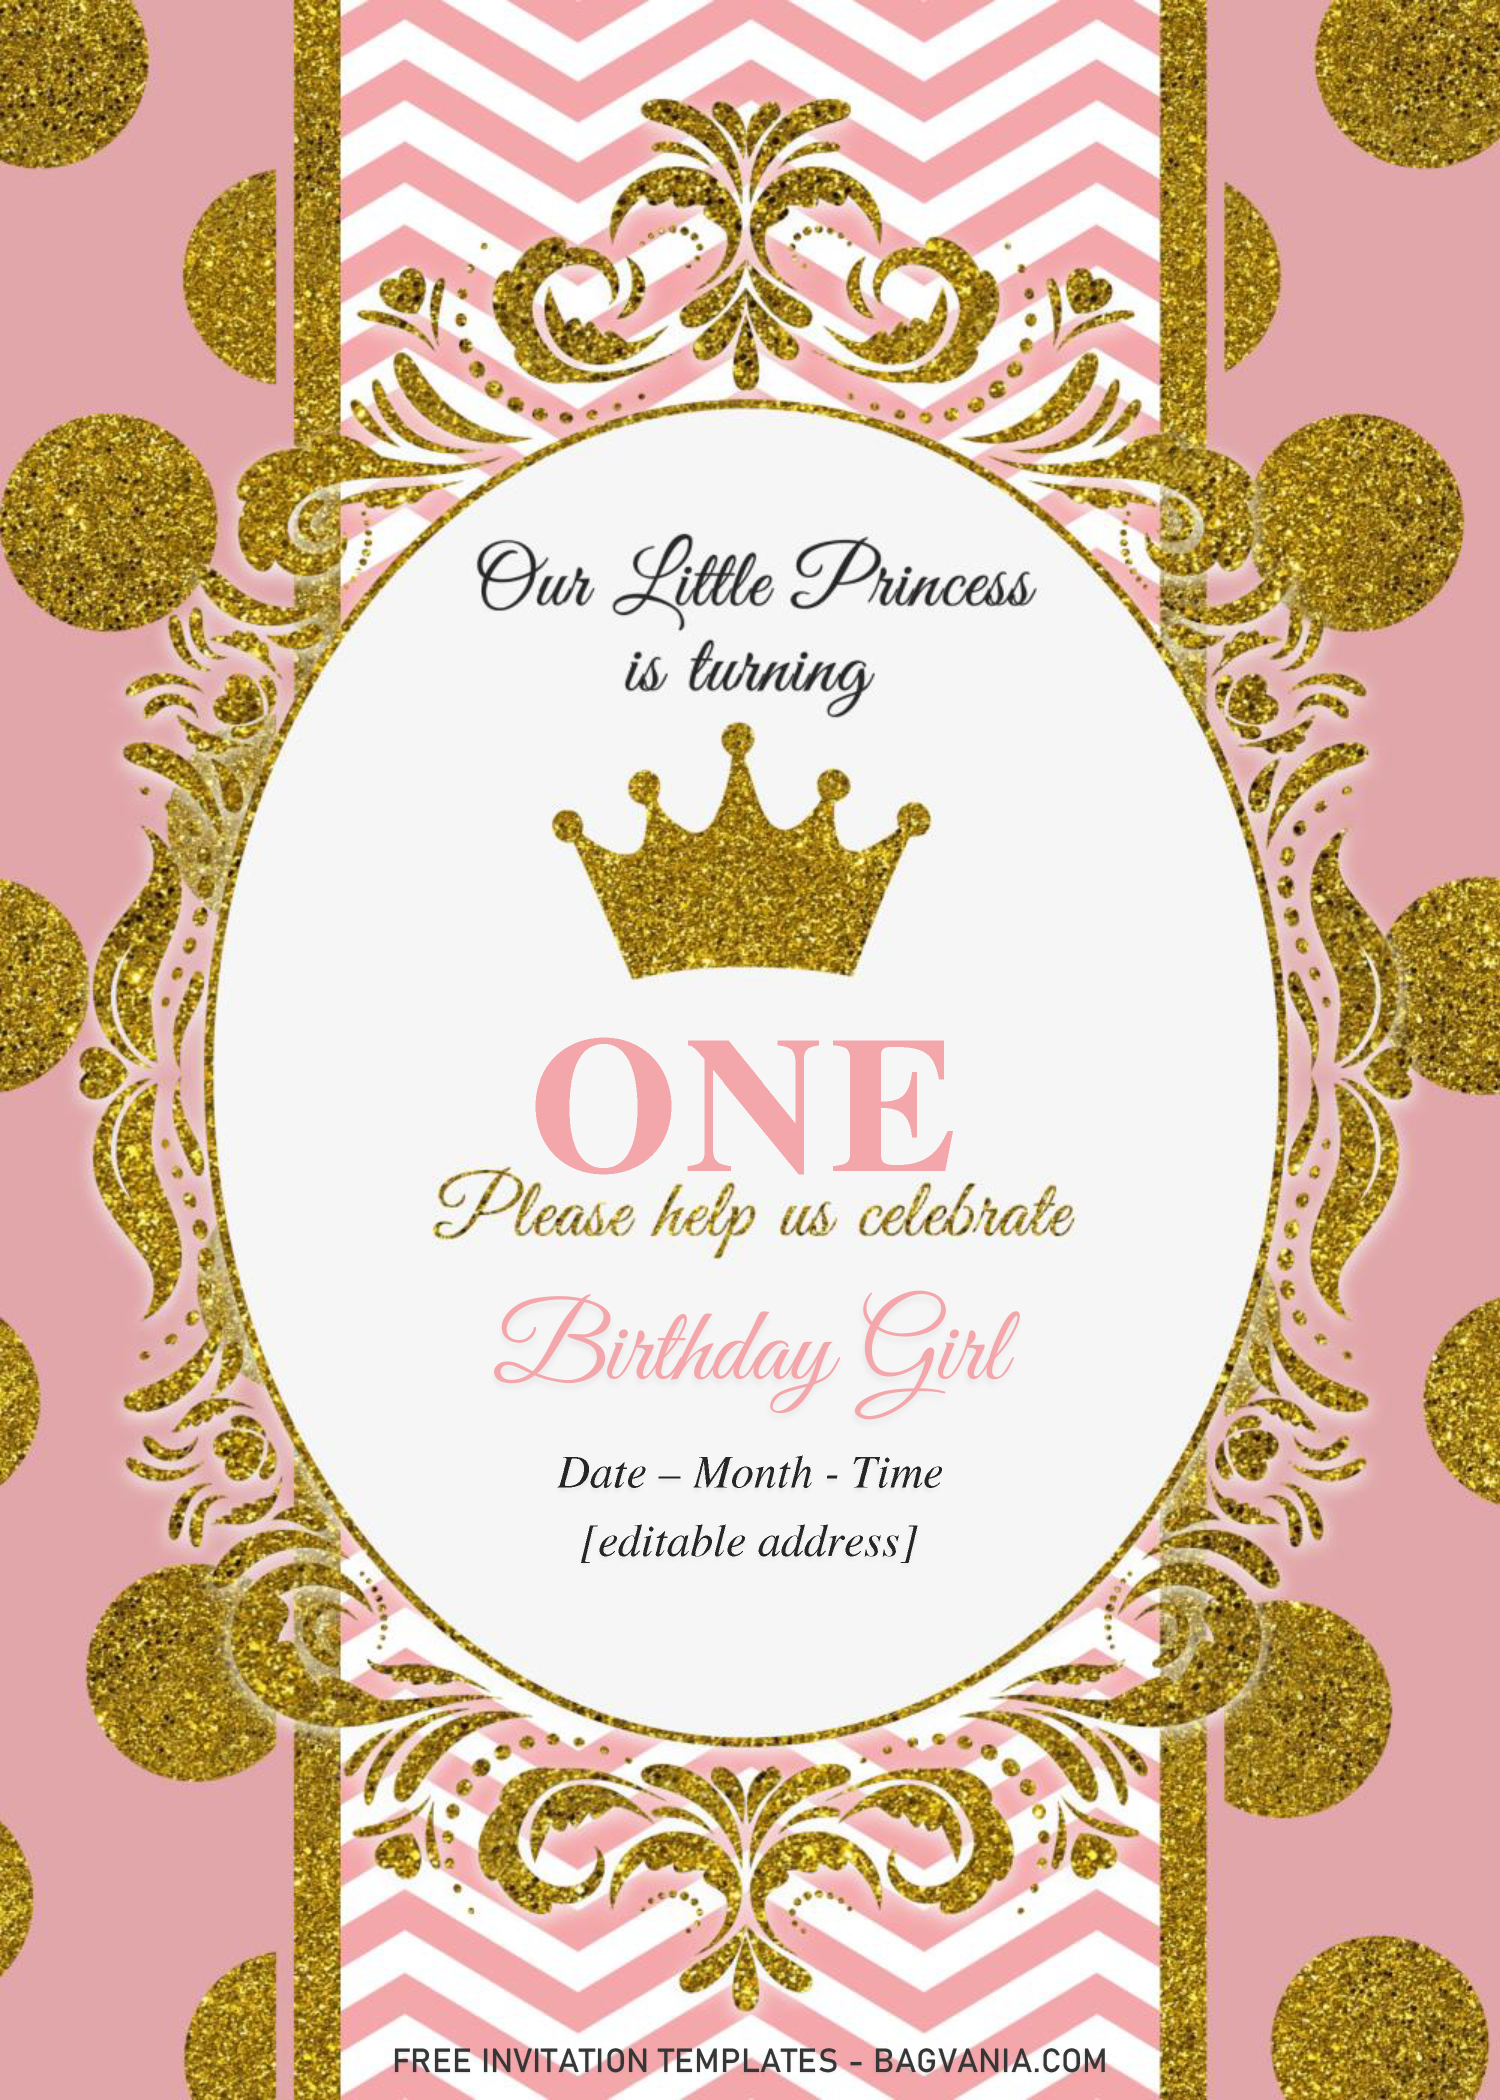 Royal Princess Baby Shower Invitation Templates Editable D Princess Baby Shower Invitation Free Printable Baby Shower Invitations Royal Princess Baby Shower